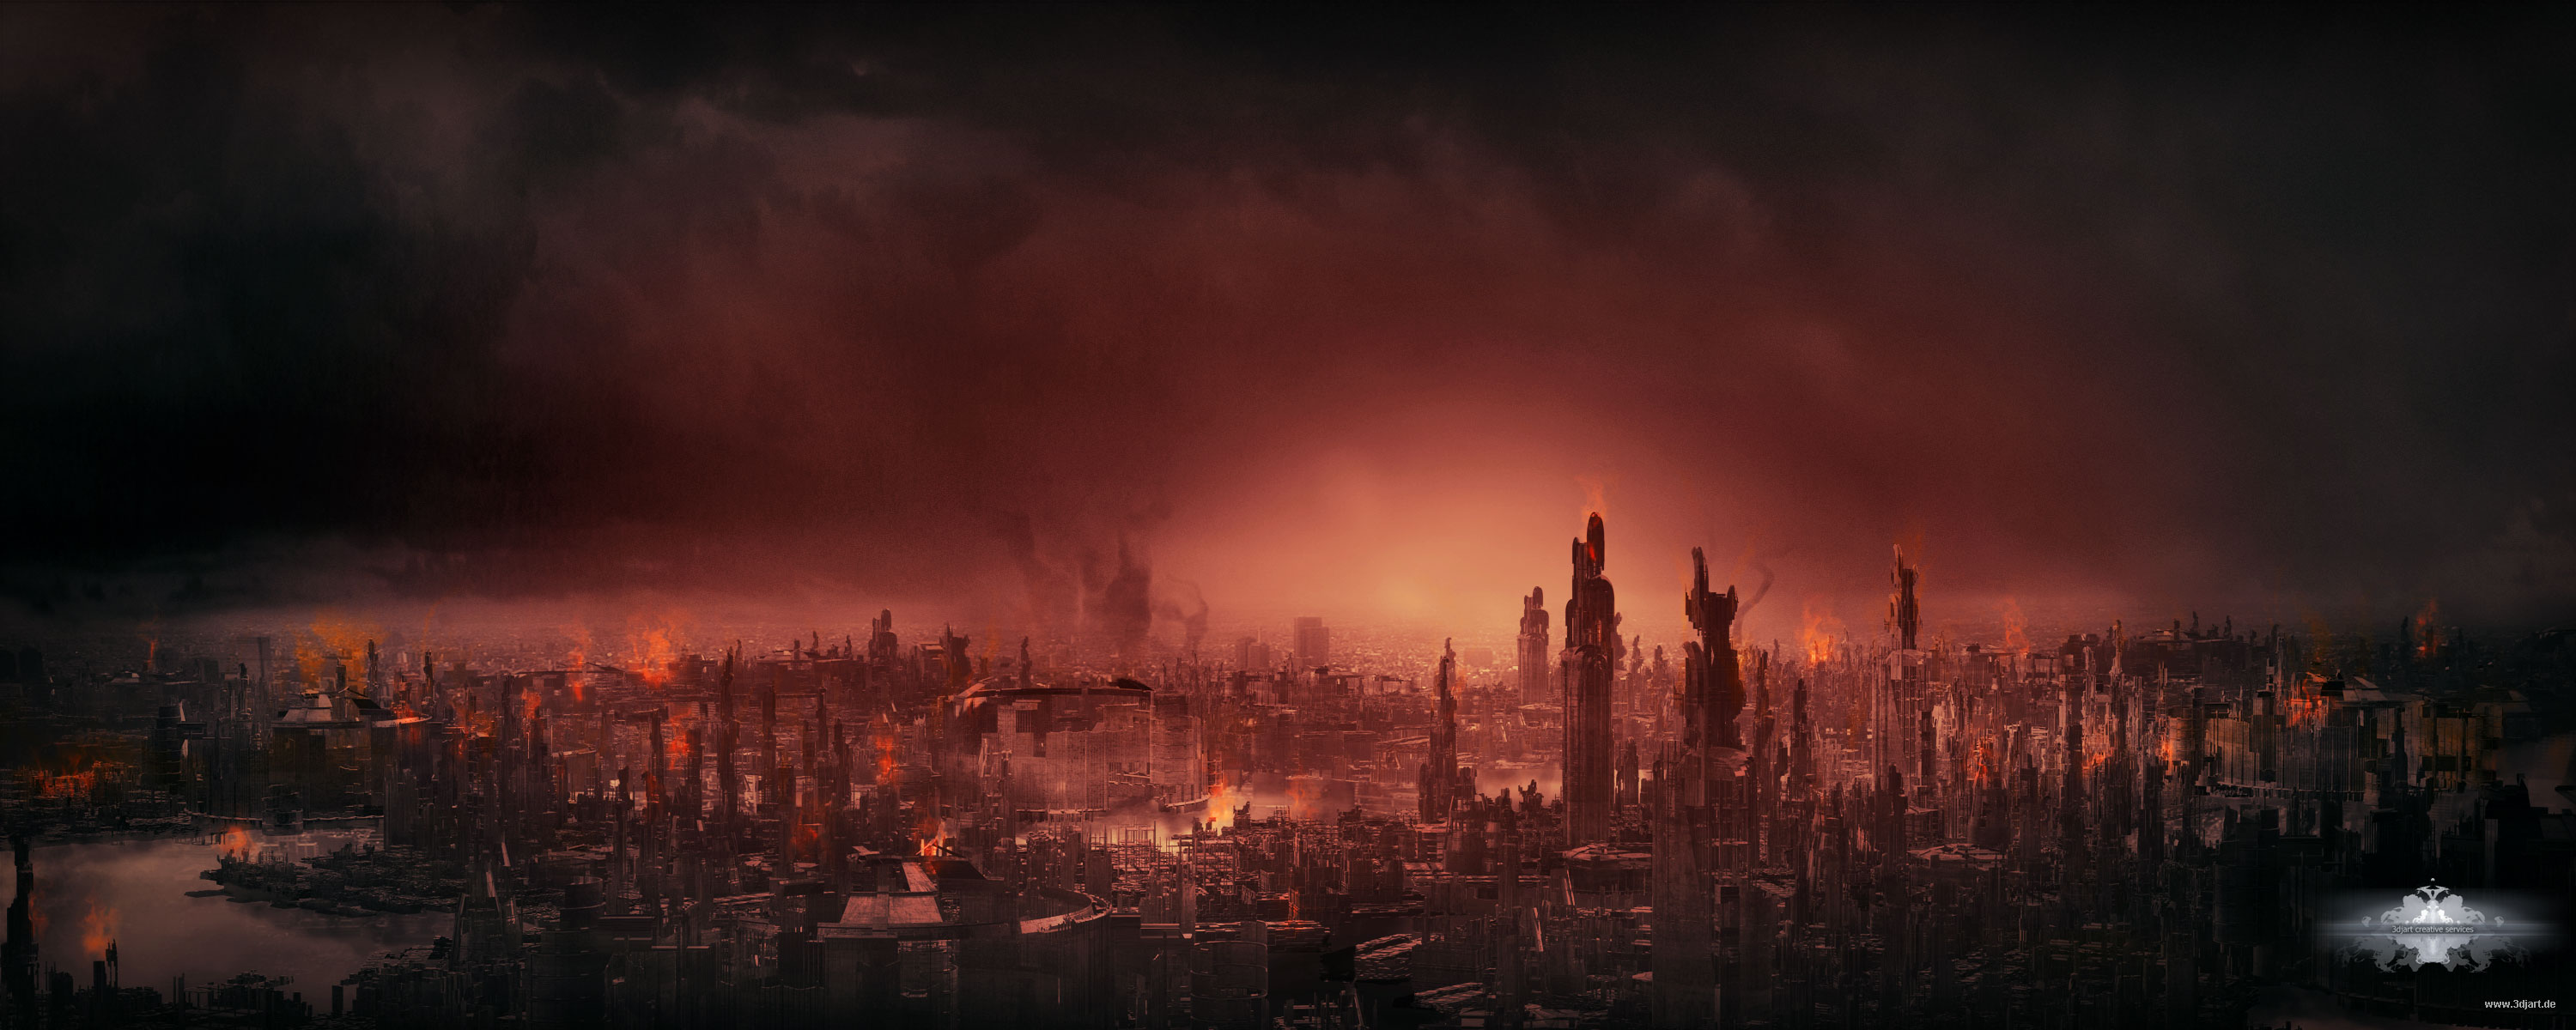 Destroyed City Landscape Destroyed city mattepainting 3000x1200